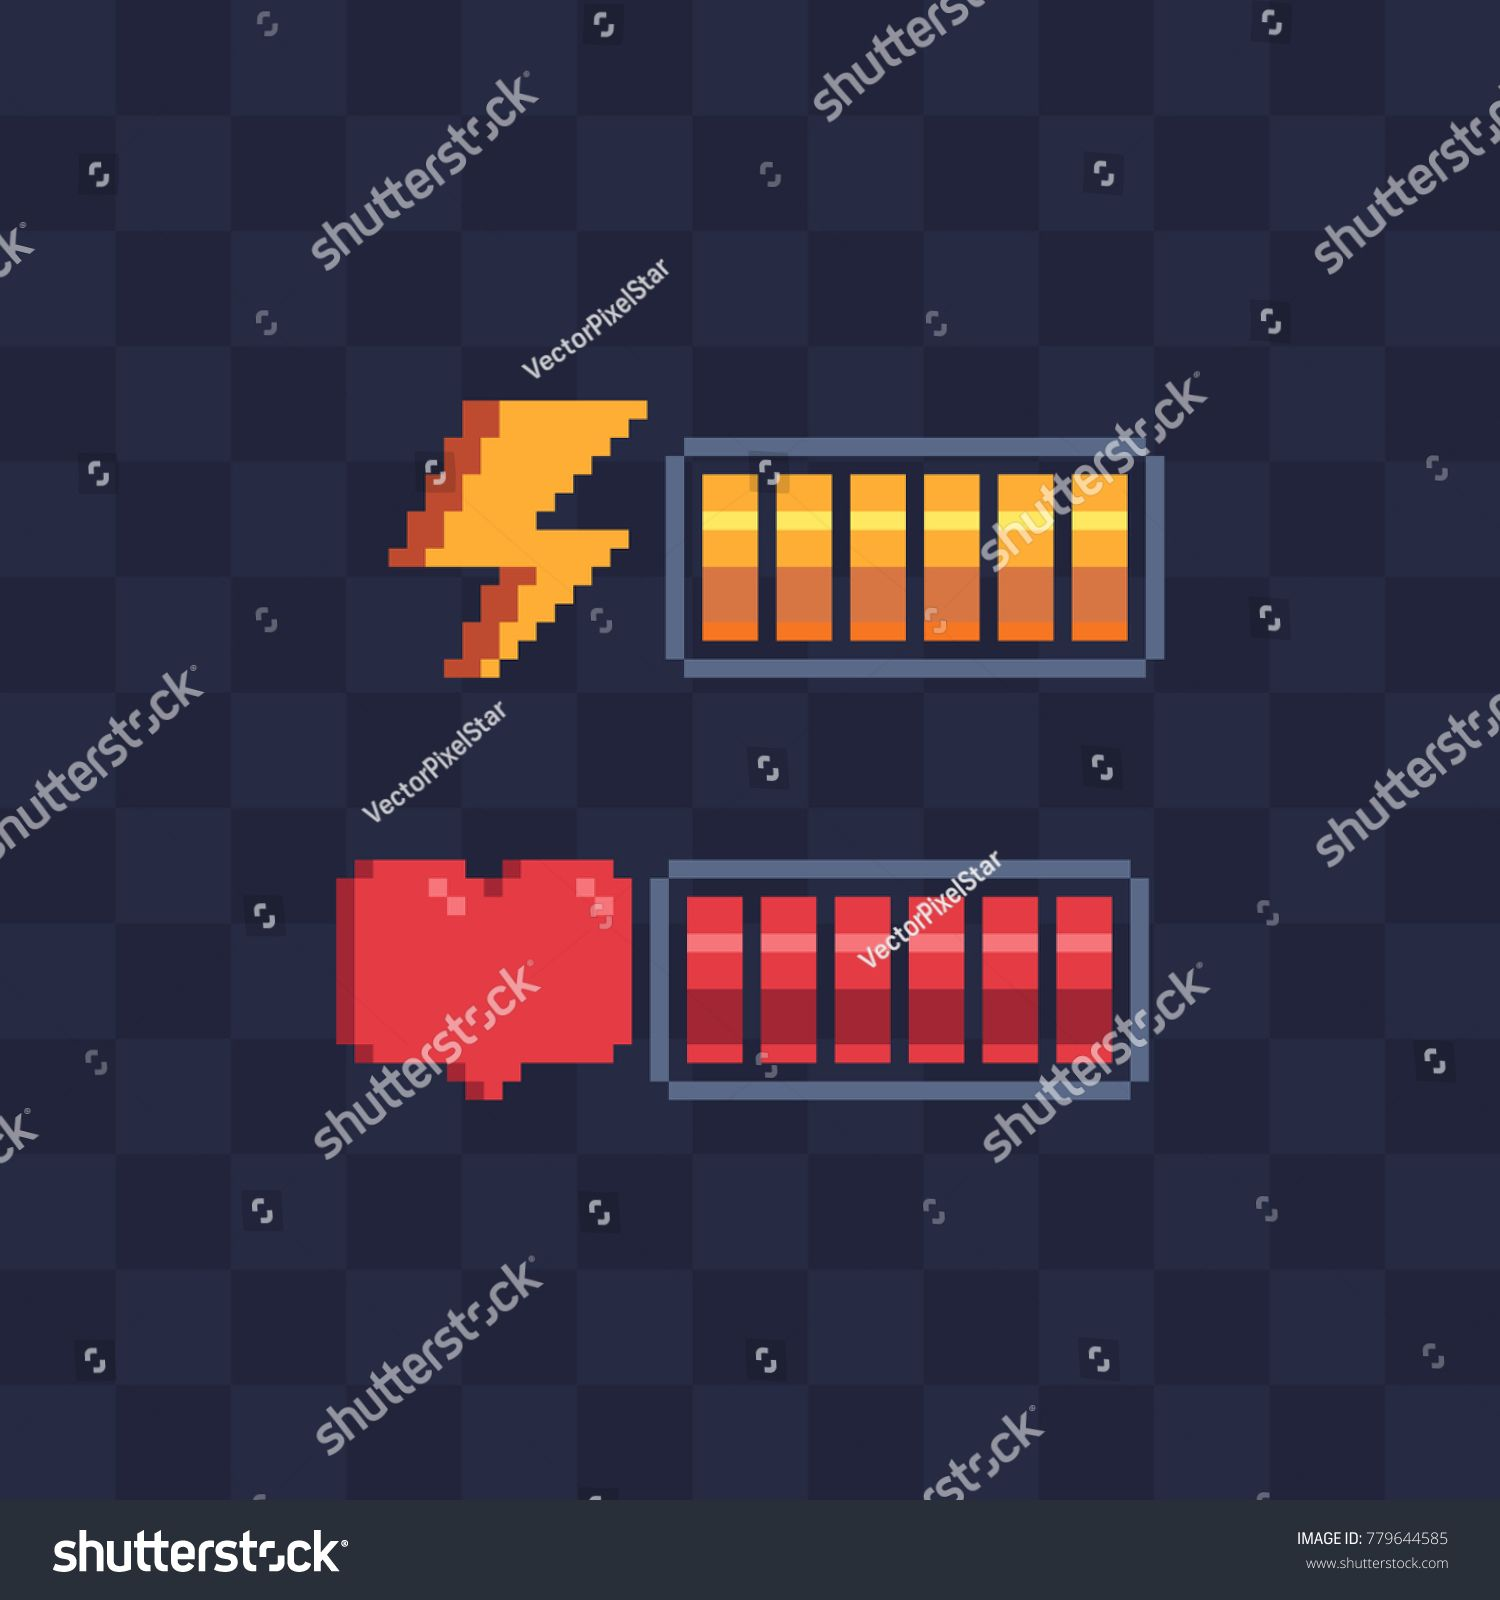 Pixel Art Style Battery Charge Full Health Bar Video Game 8 Bit